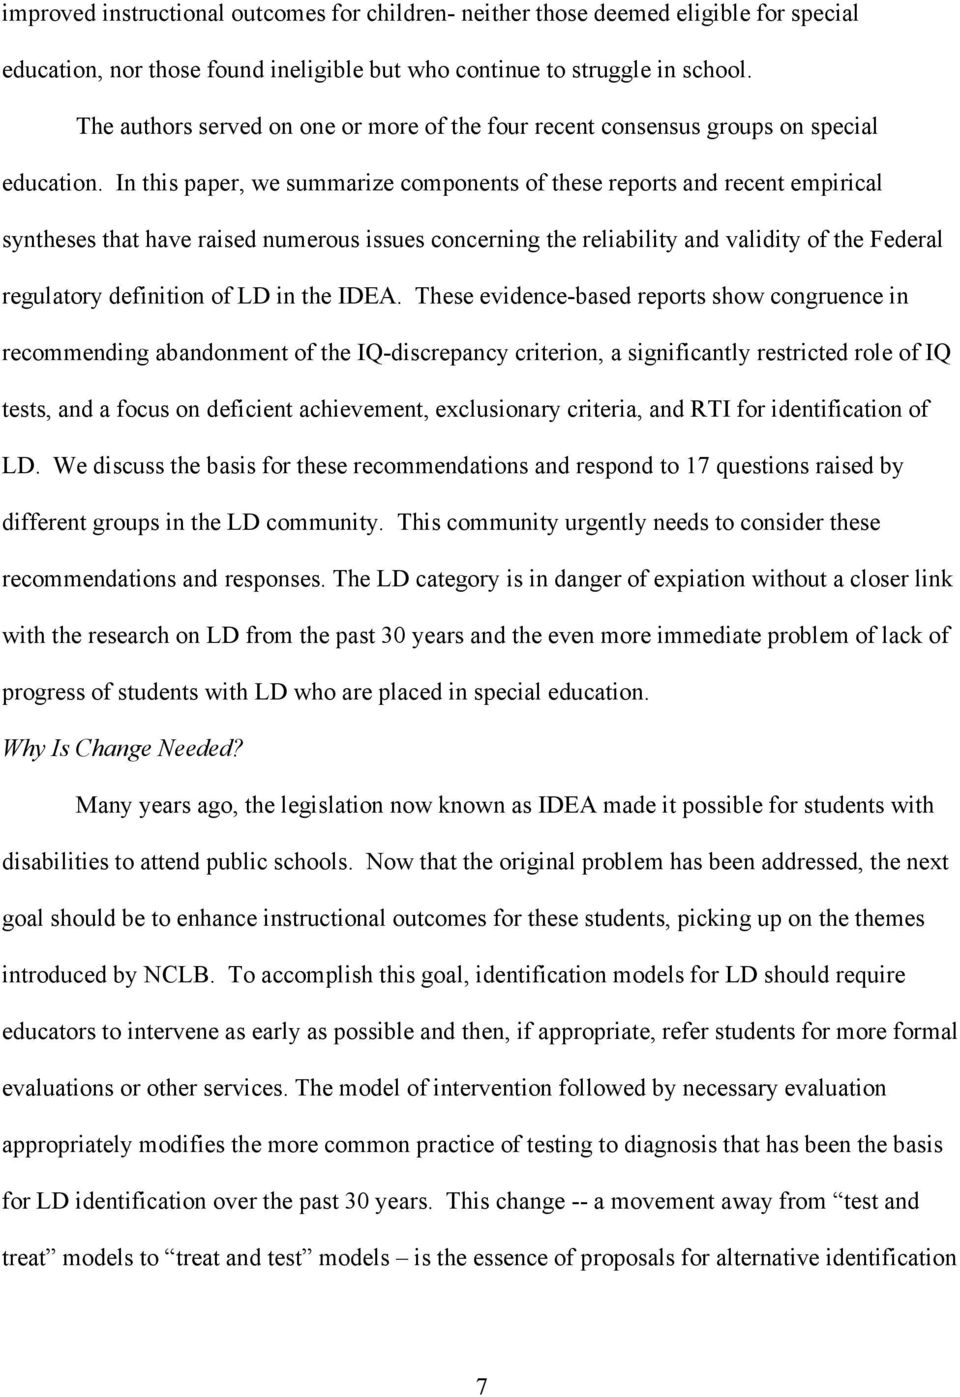 In this paper, we summarize components of these reports and recent empirical syntheses that have raised numerous issues concerning the reliability and validity of the Federal regulatory definition of